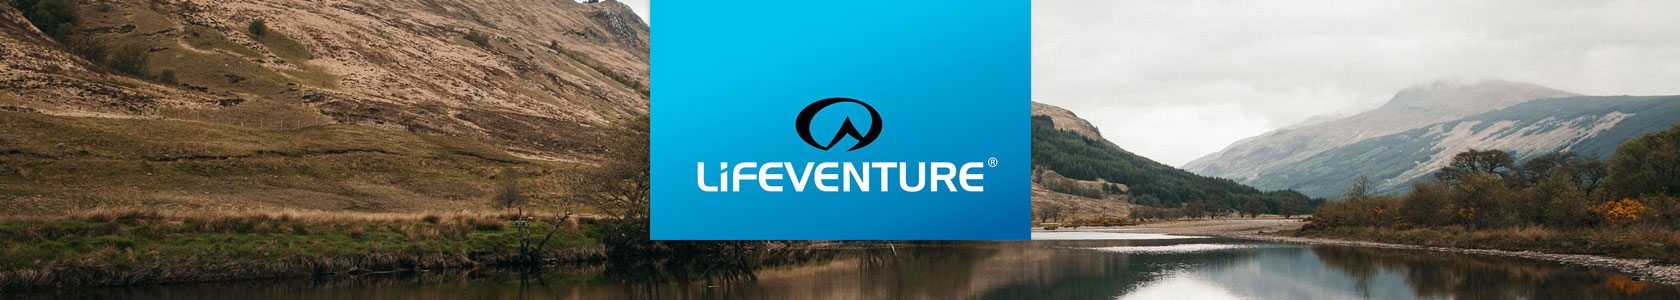 Lifeventure logo and a lake in the background